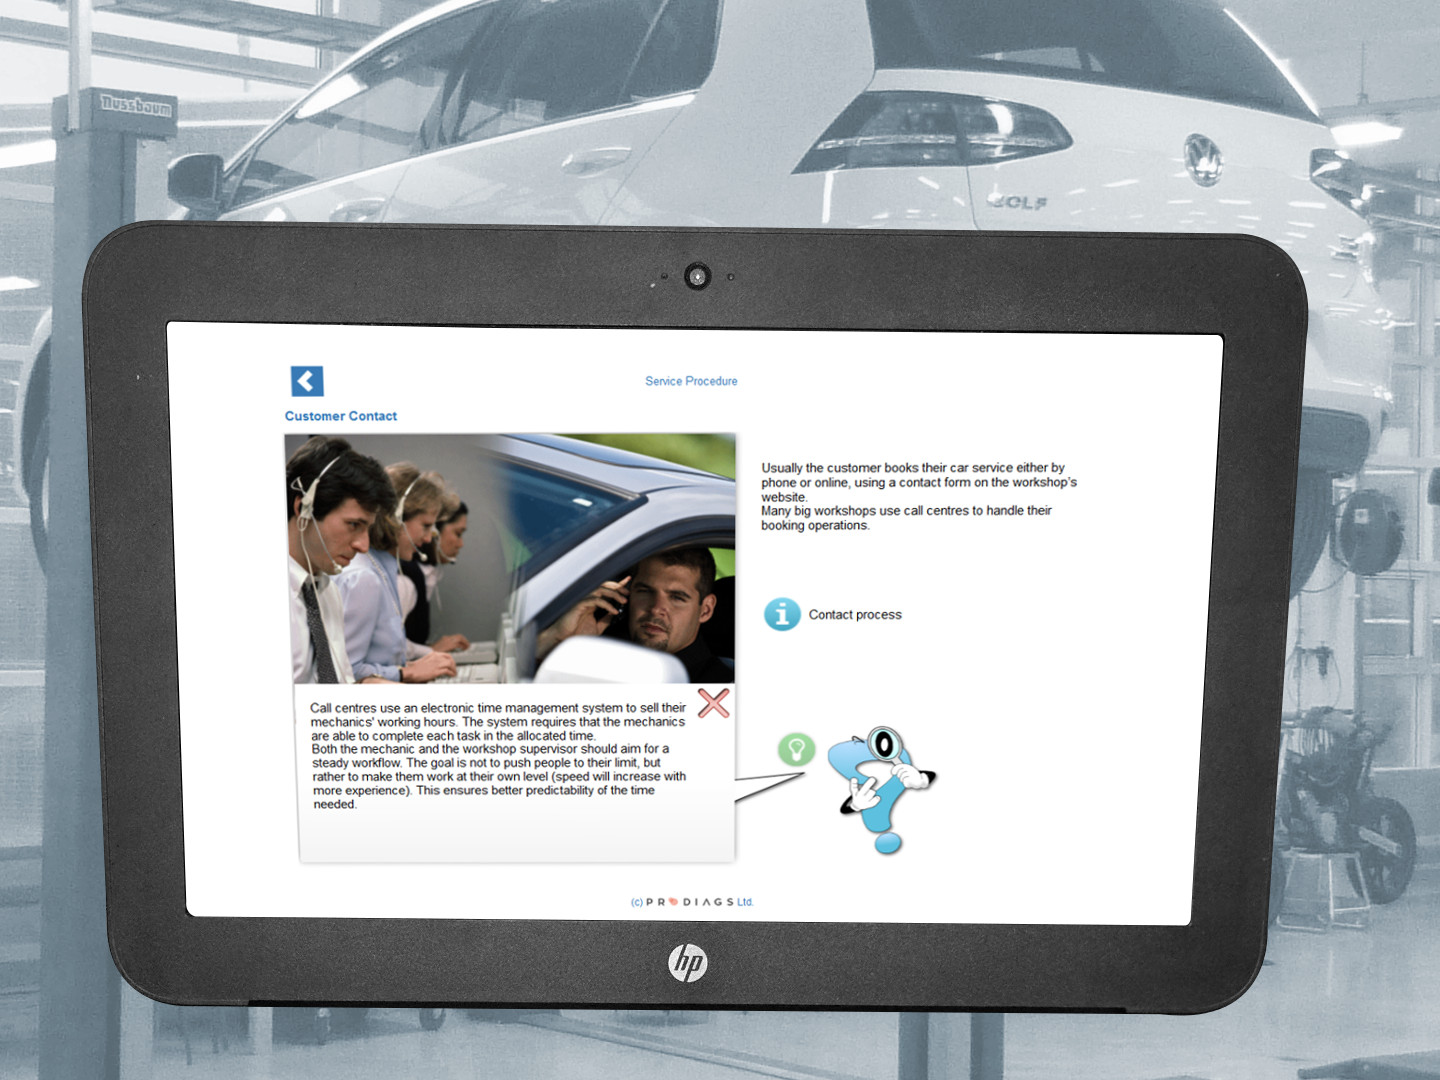 In a workshop, both managers and mechanics should be familiar with customer service. From booking the services to giving advice to the customer on the road. With this training module you will learn the importance of customer service and how to keep your workshop's customers happy.